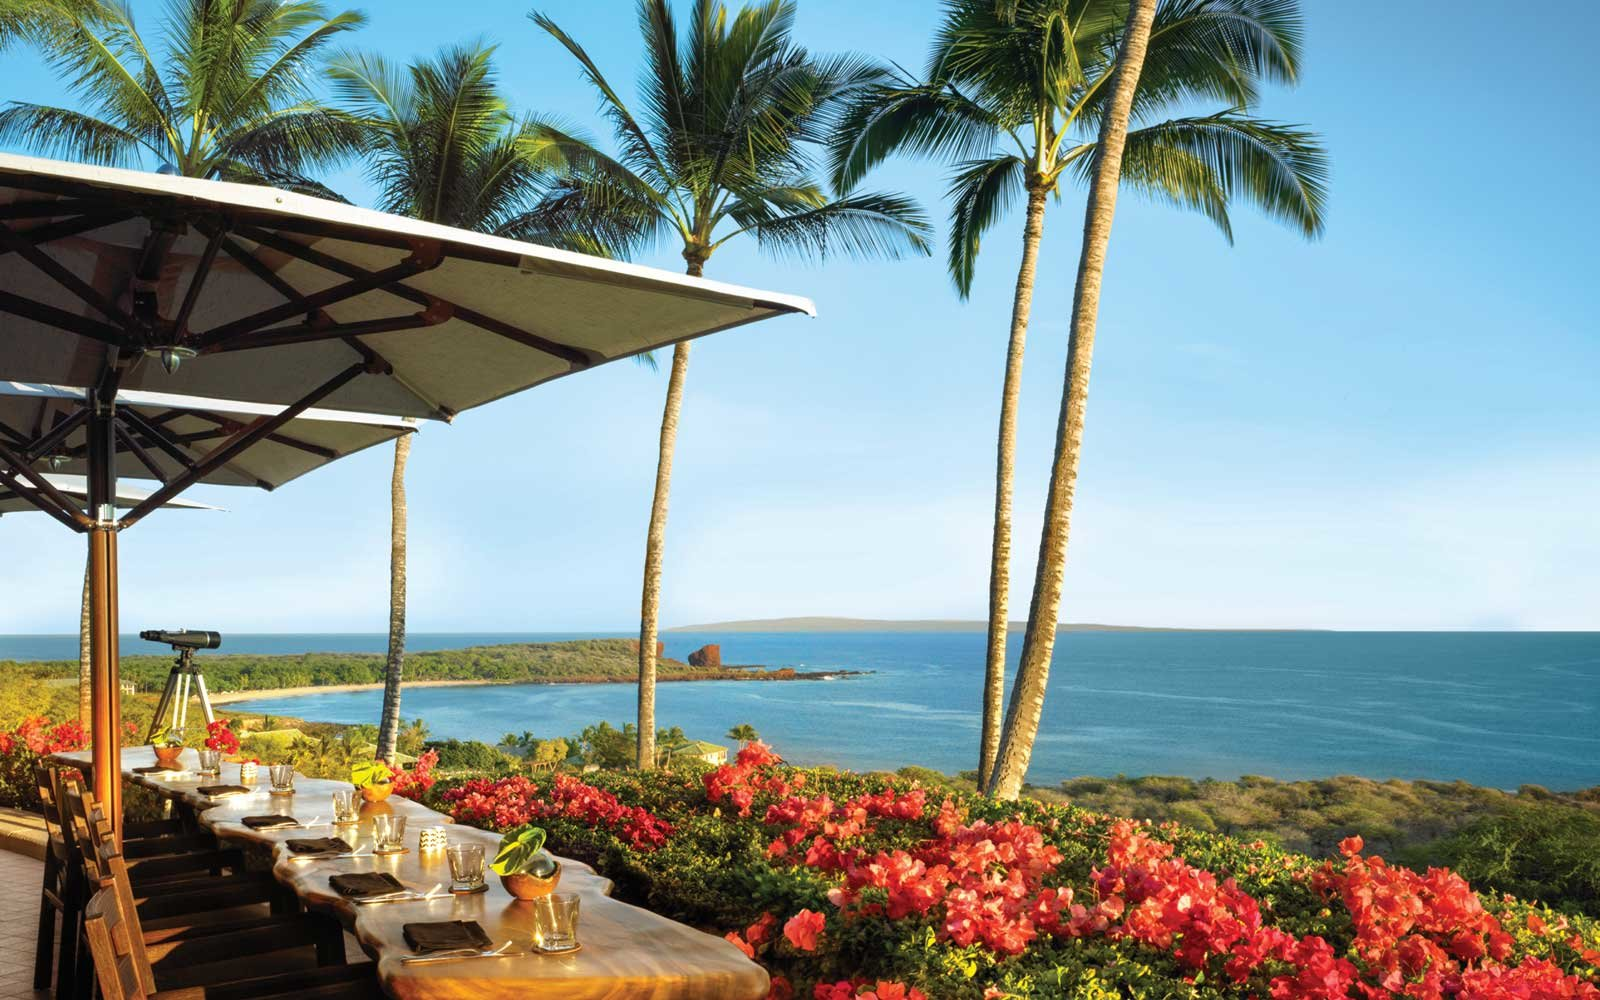 View from the Four Seasons Resort in Lanai, Hawaii